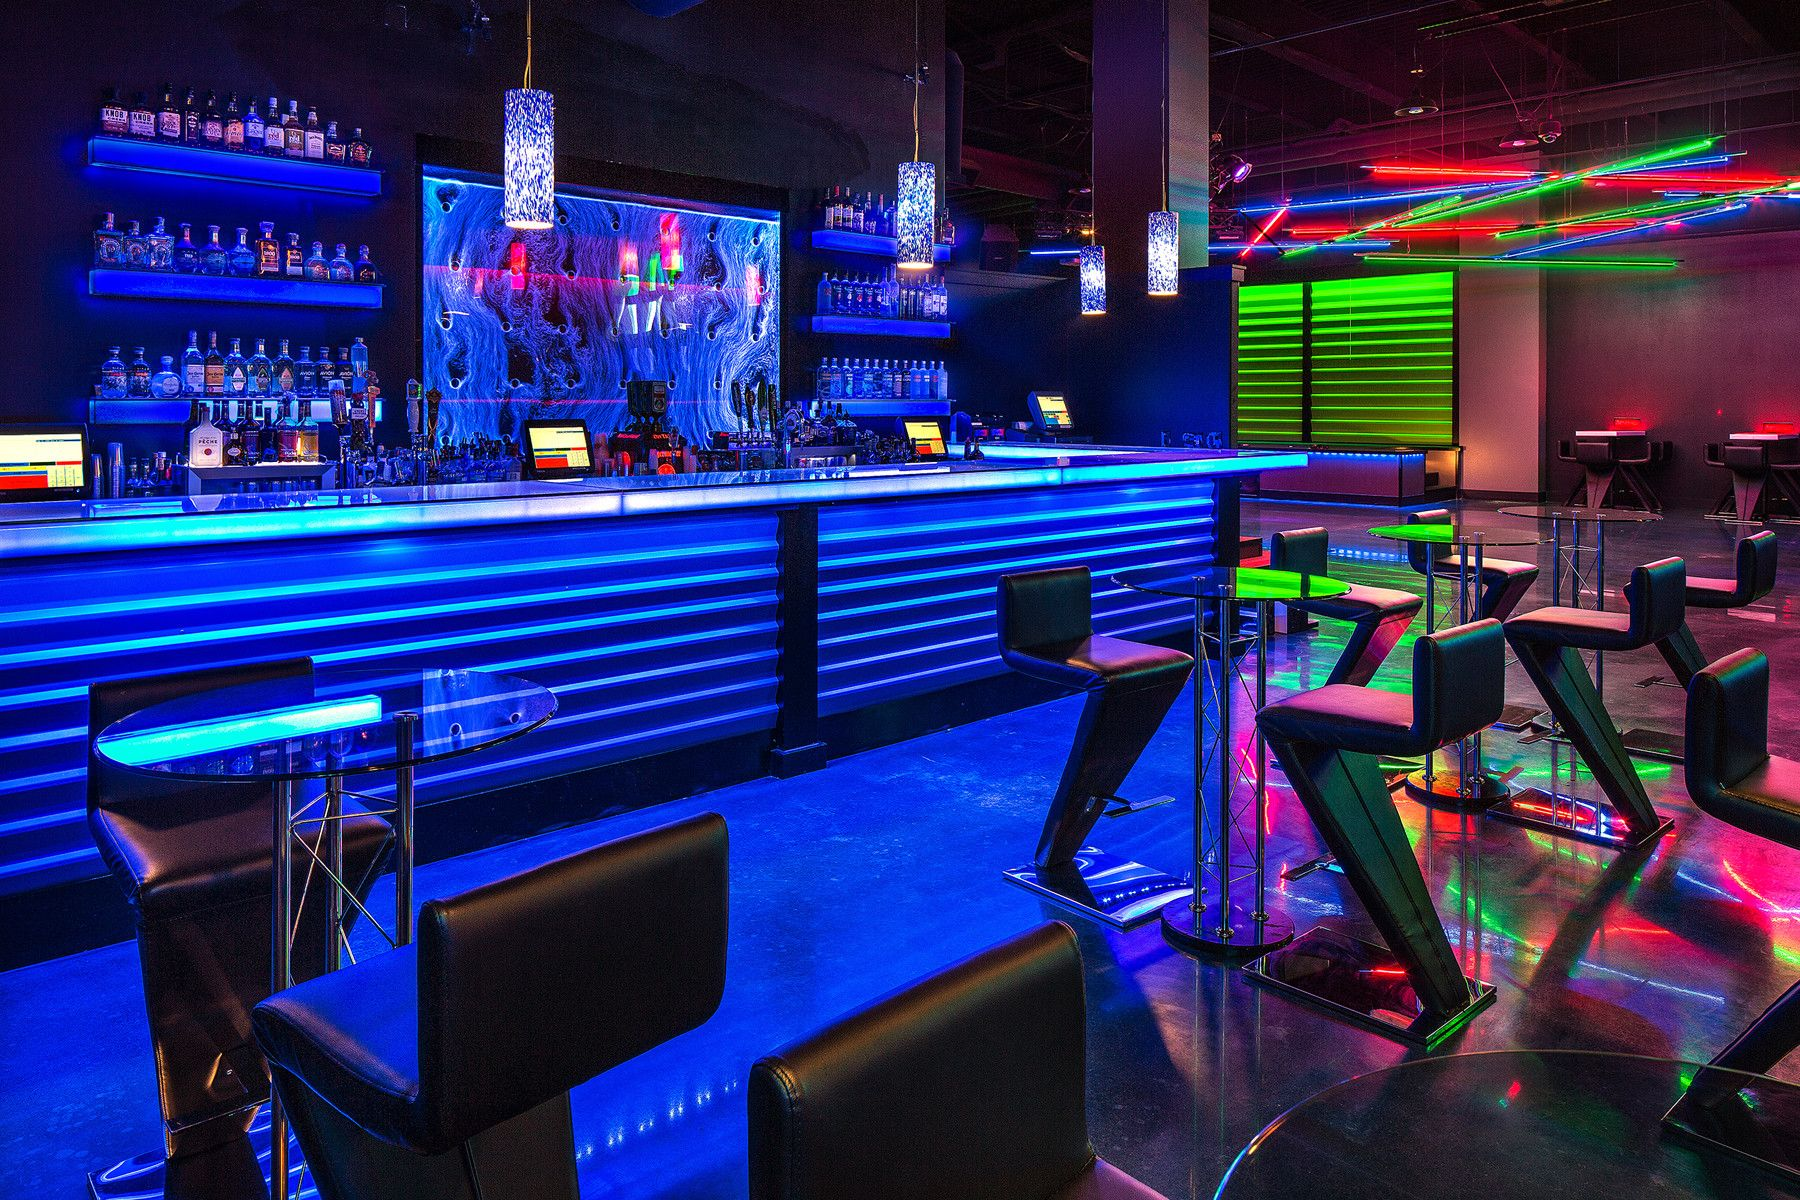 Pin By Lushes Curtains Llc On Nightclub Designs In 2019